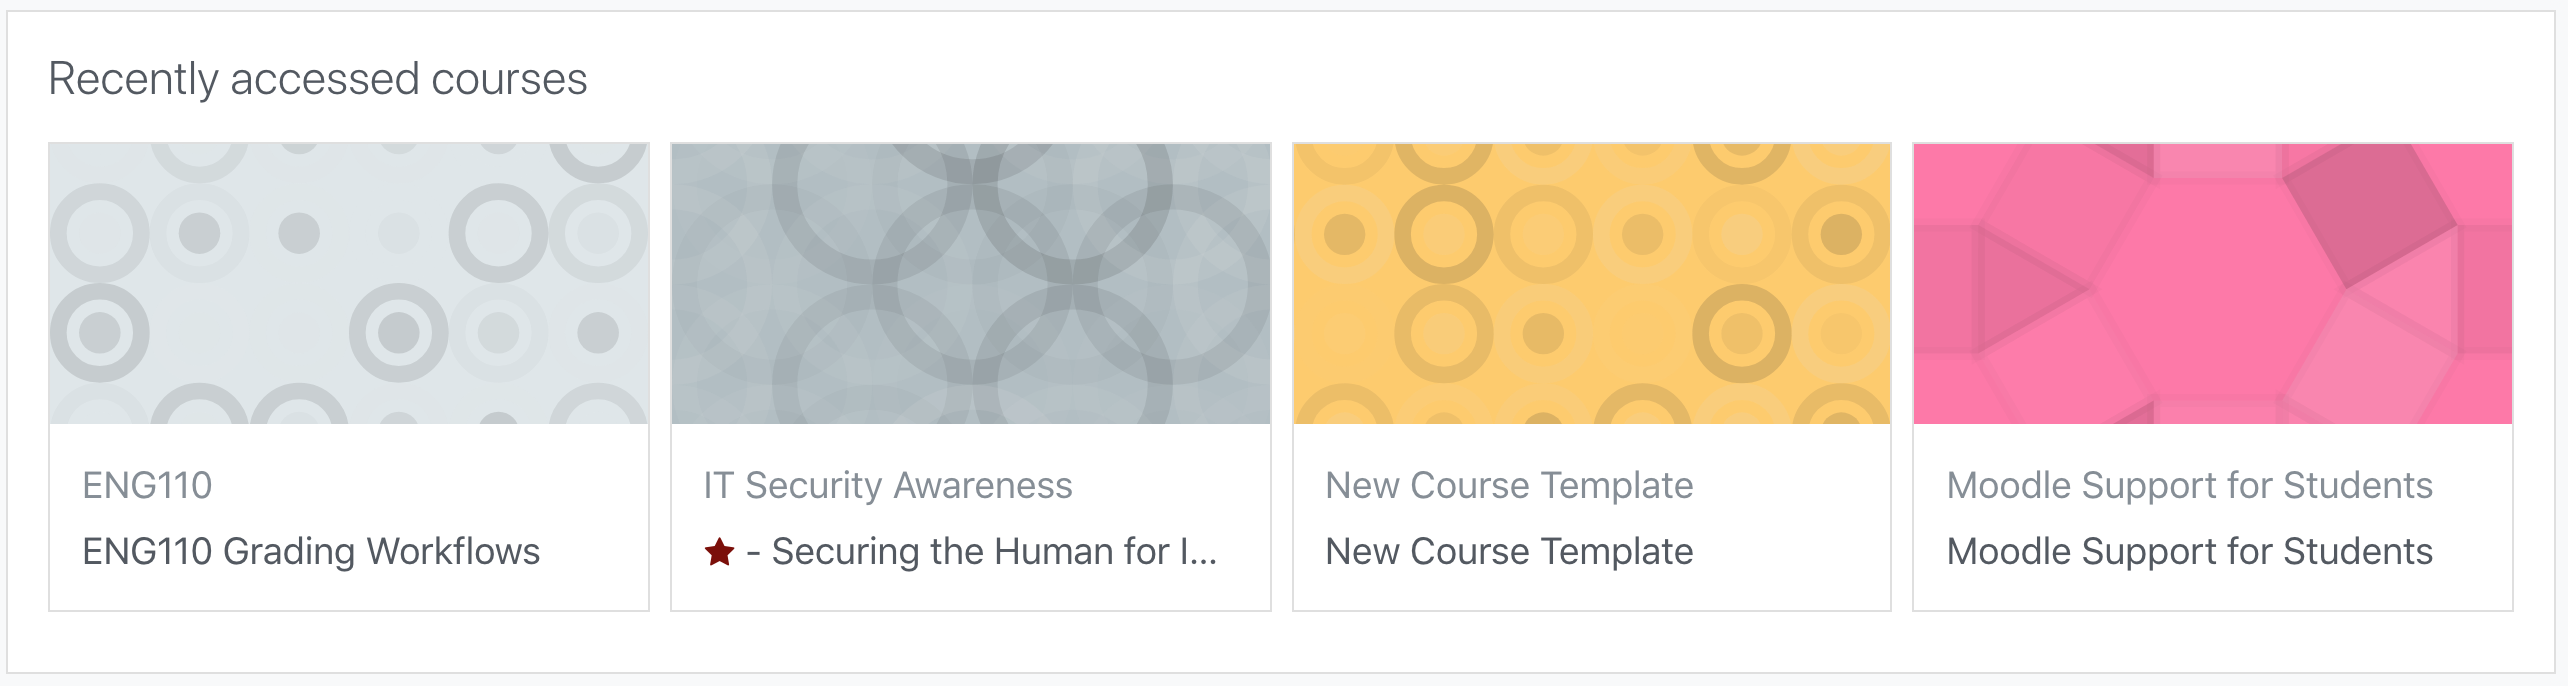 An image of recently accessed courses.